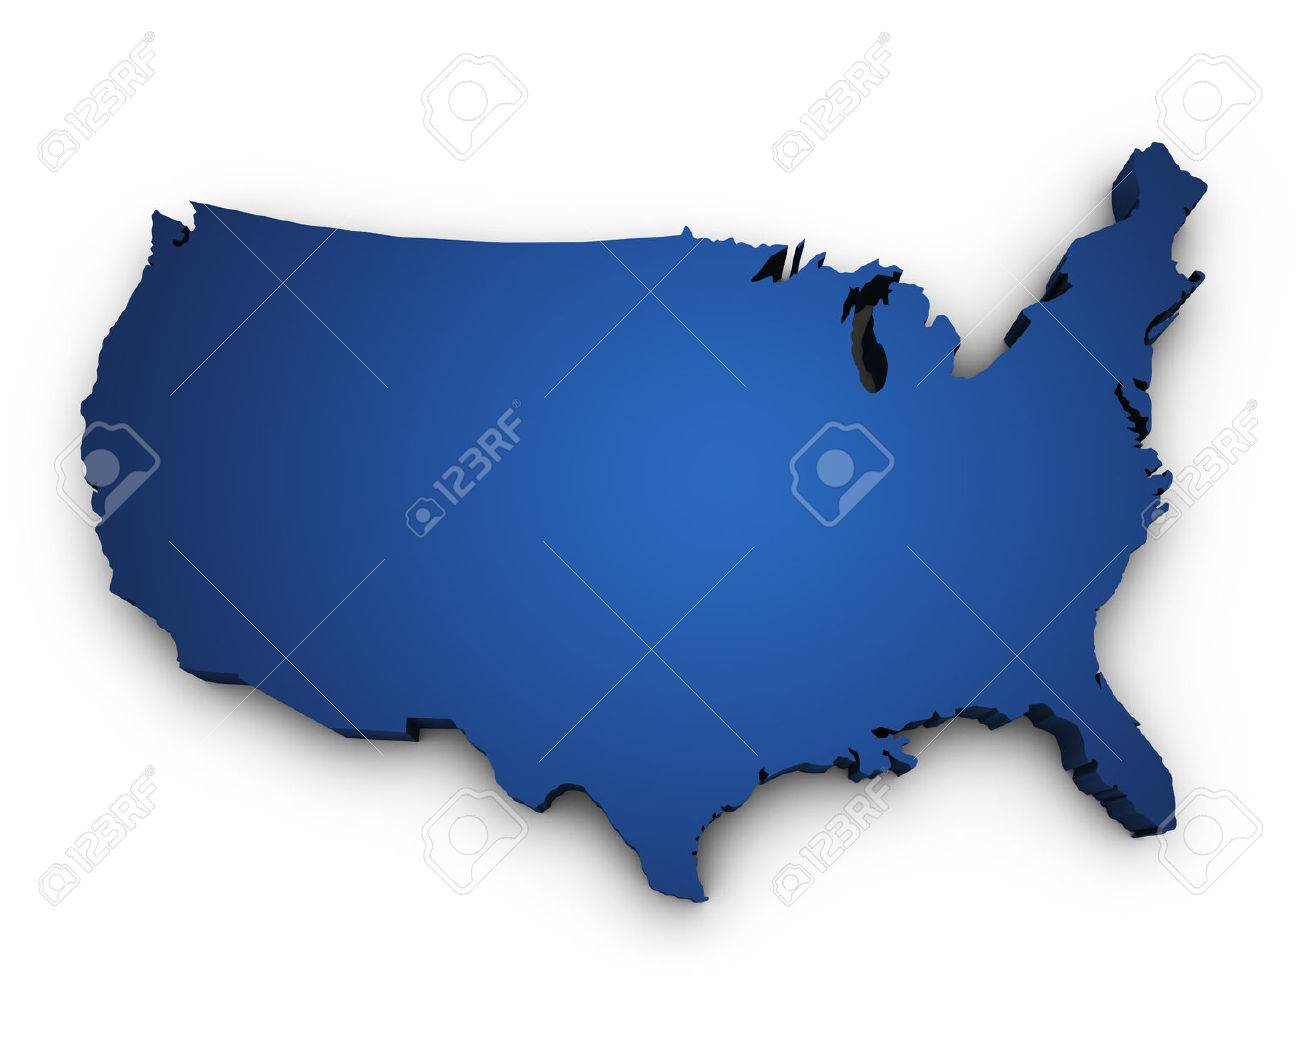 Shape 3d Of Usa United States Of America Map Colored In Blue And Isolated On White